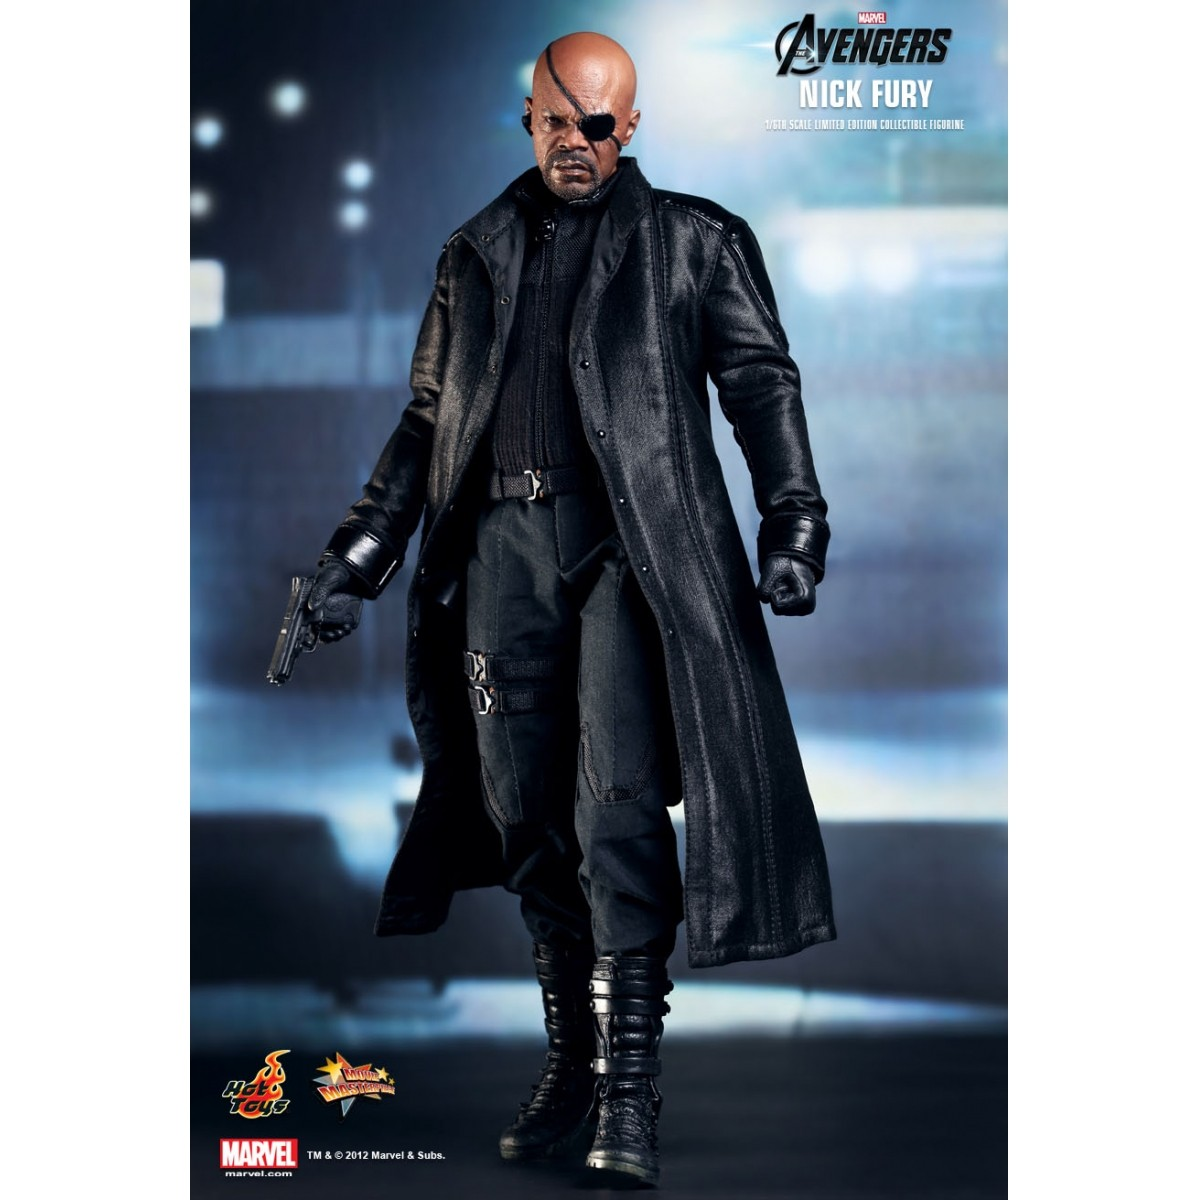 Action Figure Nick Fury: Os Vingadores: The Avengers (Escala 1/6) MMS169 Boneco Colecionável - Hot Toys